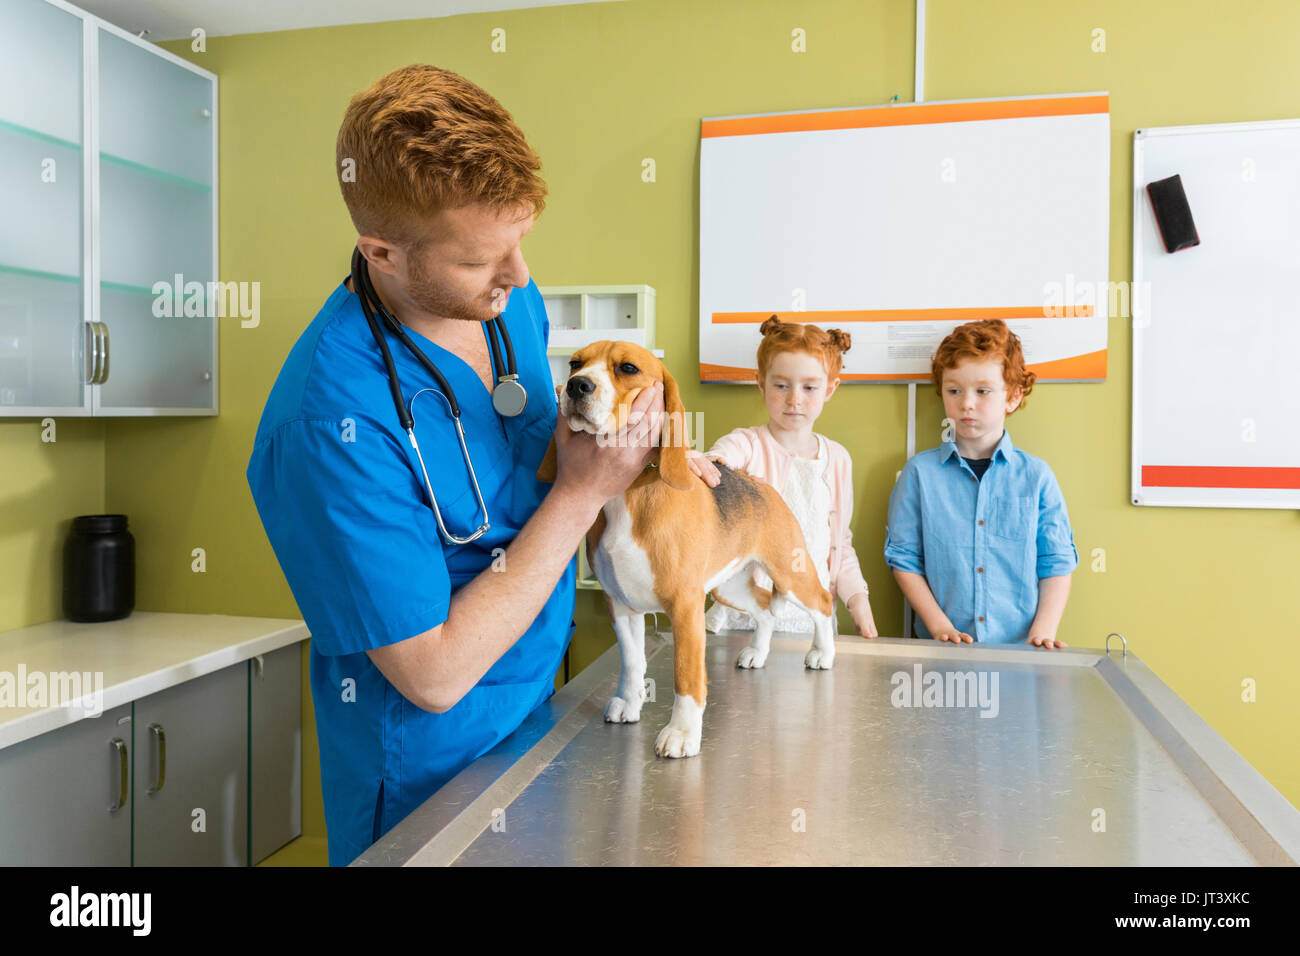 Veterinary examining Beagle dog at clinic, children pet owners standing near - Stock Image